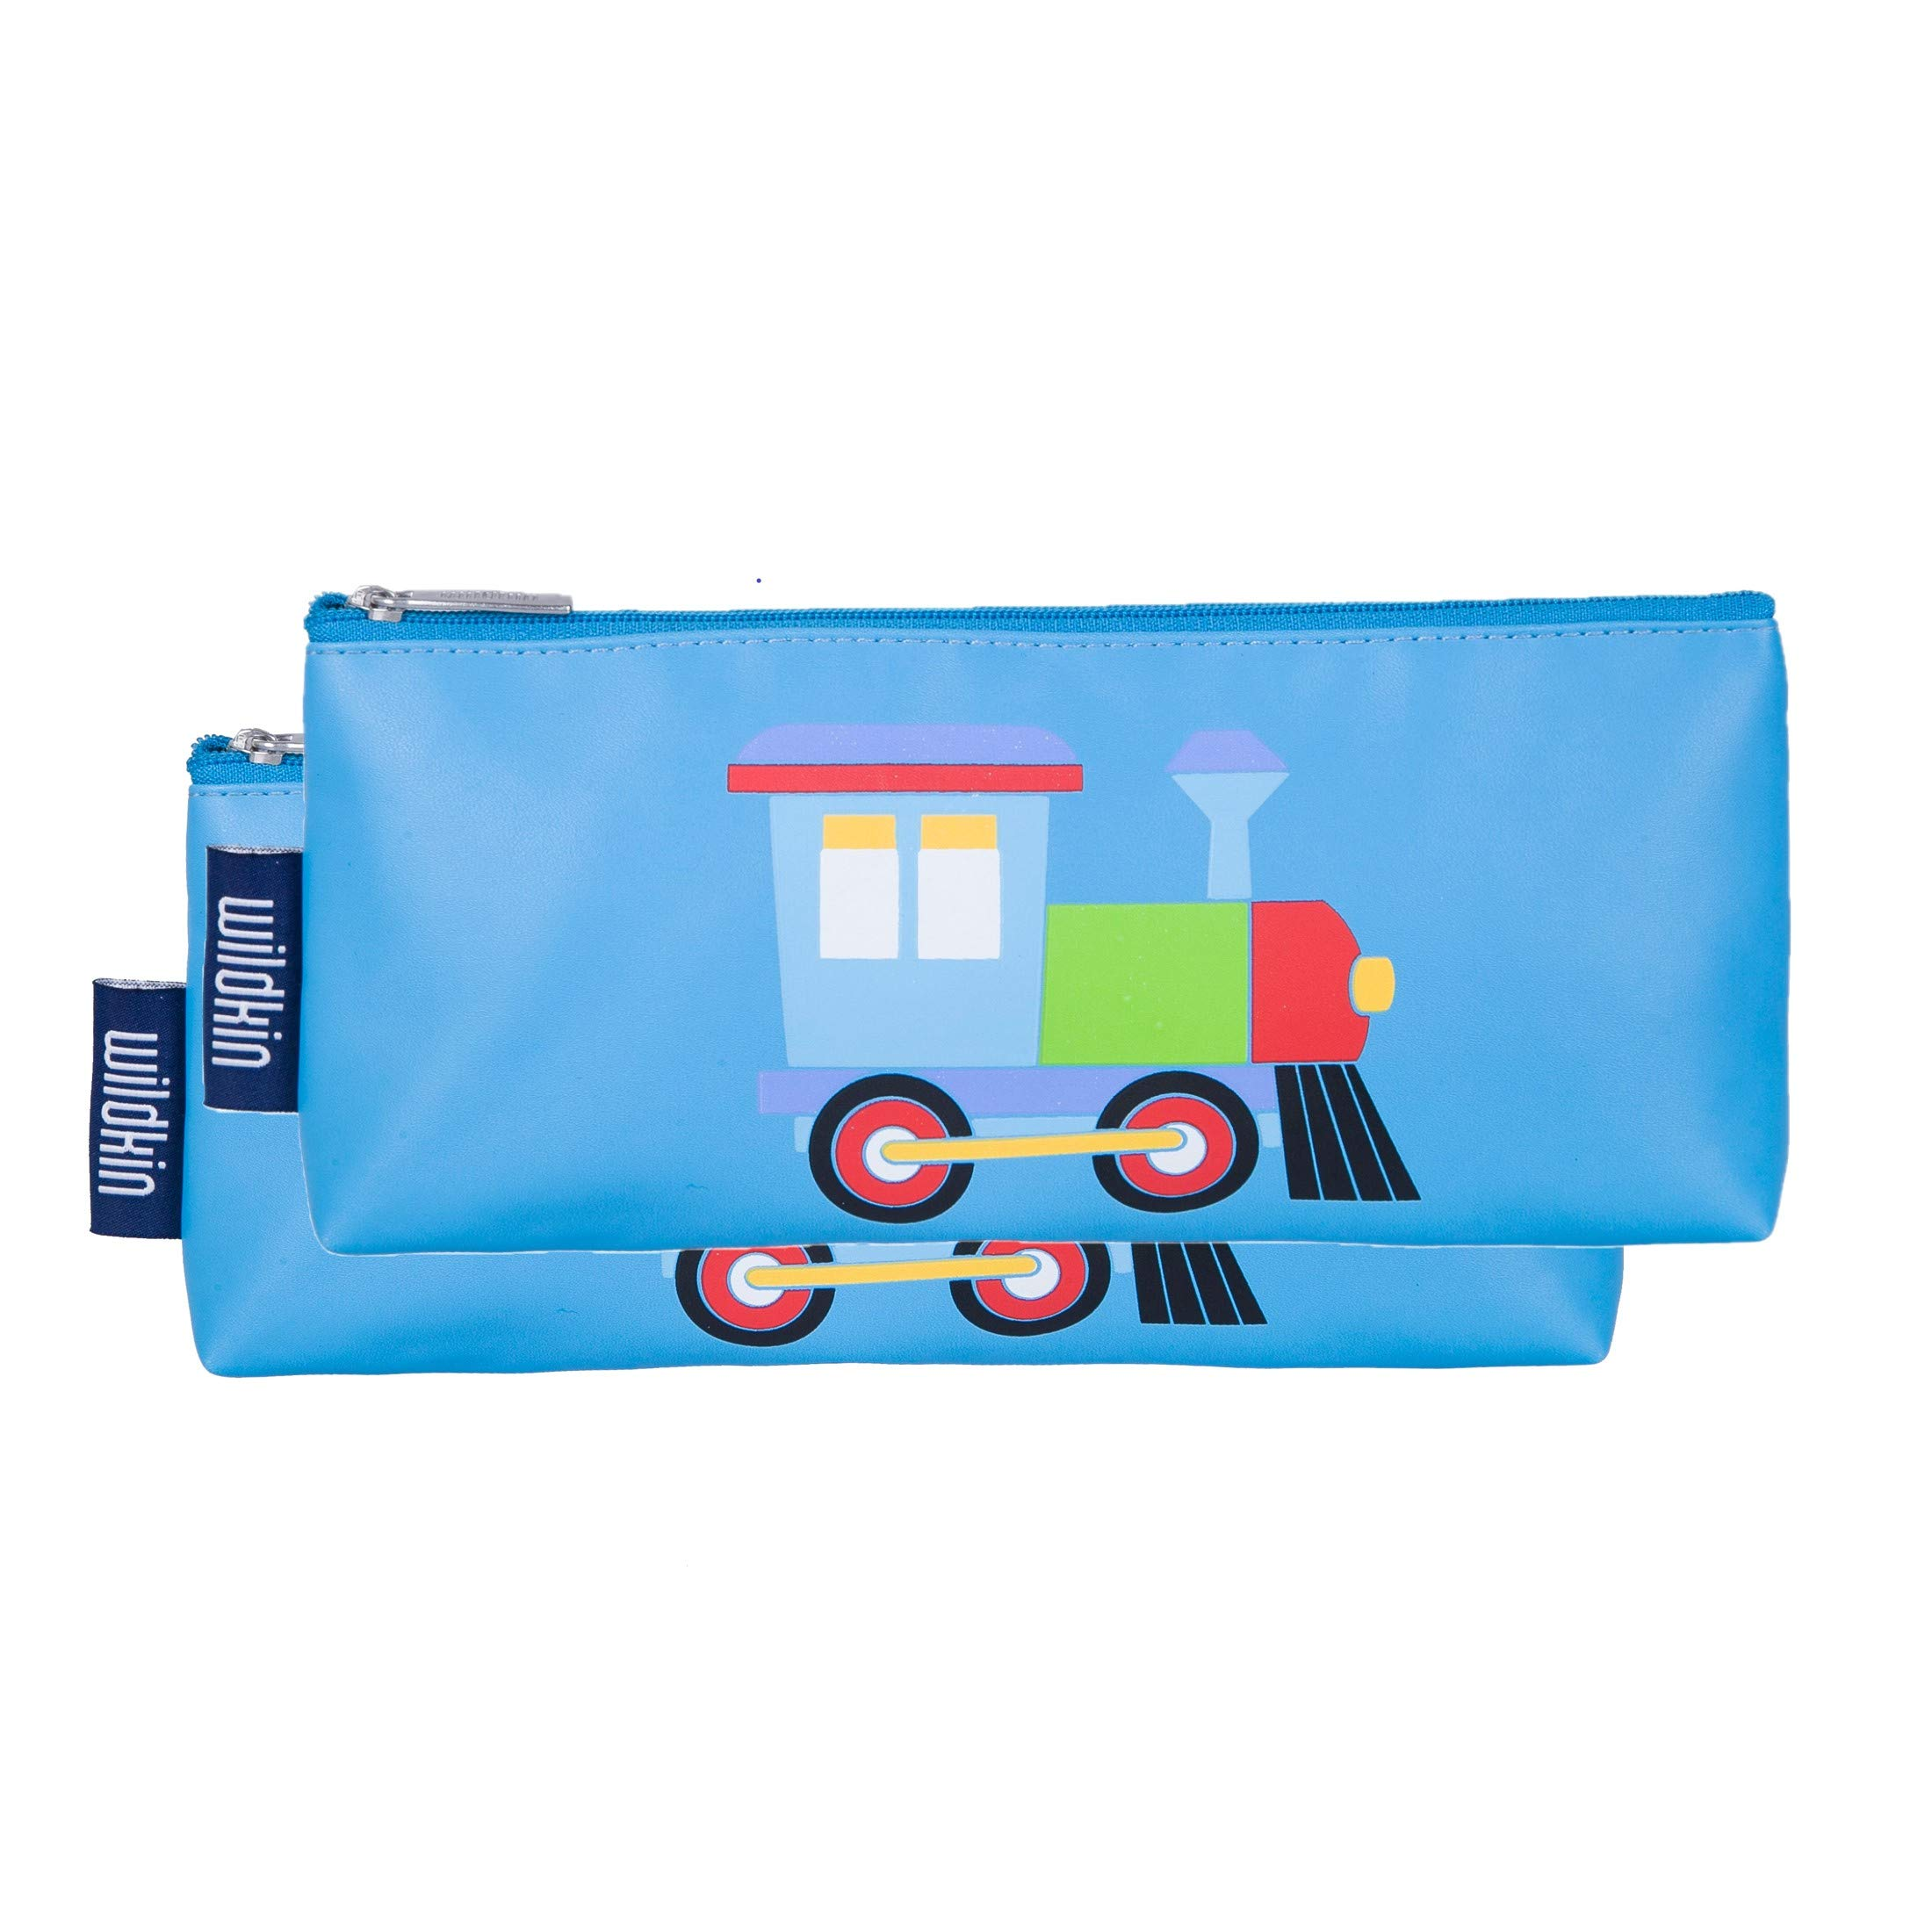 Wildkin Kids Pencil Pouch for Boys and Girls, Comes with 2 Matching Pouches, Perfect for Packing Pens,  Markers, and Other Supplies for School and Travel, Patterns Coordinate with Our Backpacks